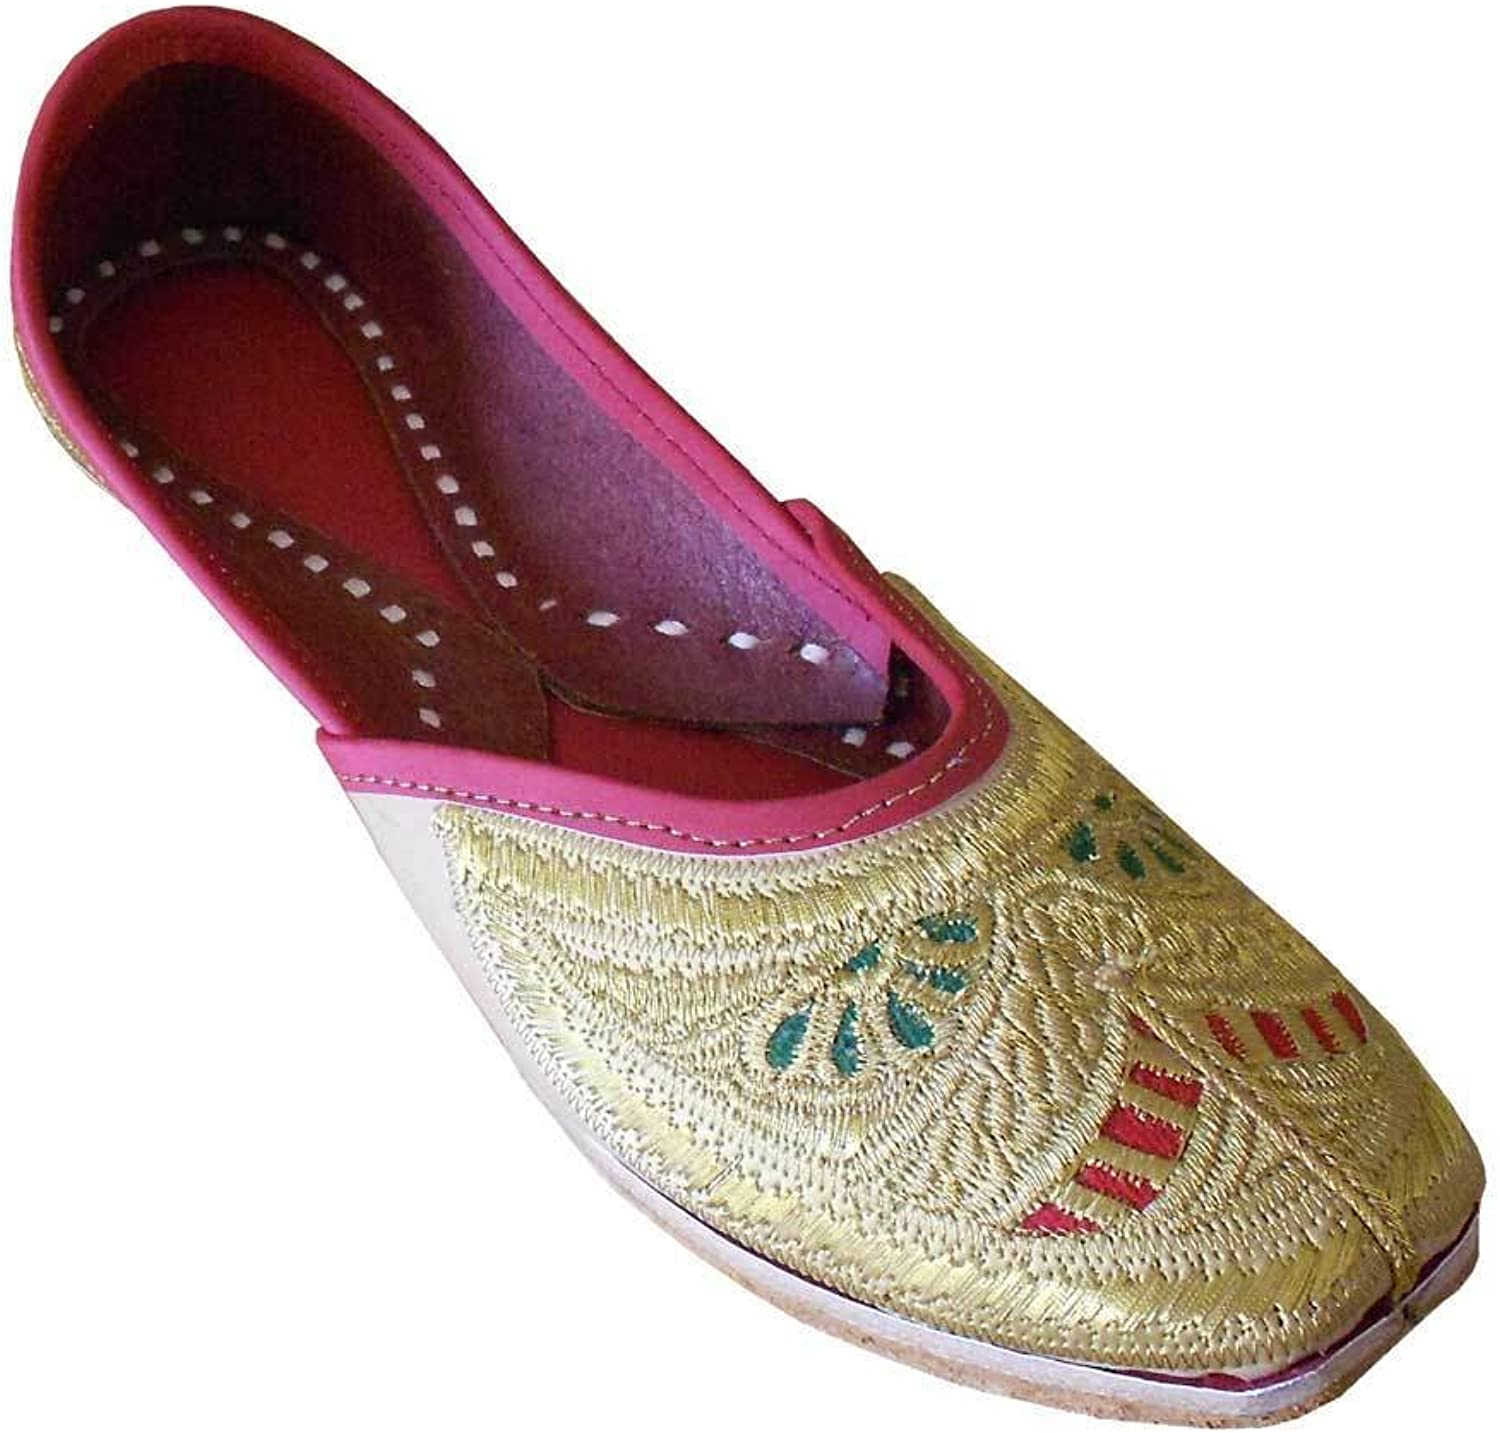 Kalra Creations Women's Traditonal Indian Faux Leather with Embroidery Wedding shoes